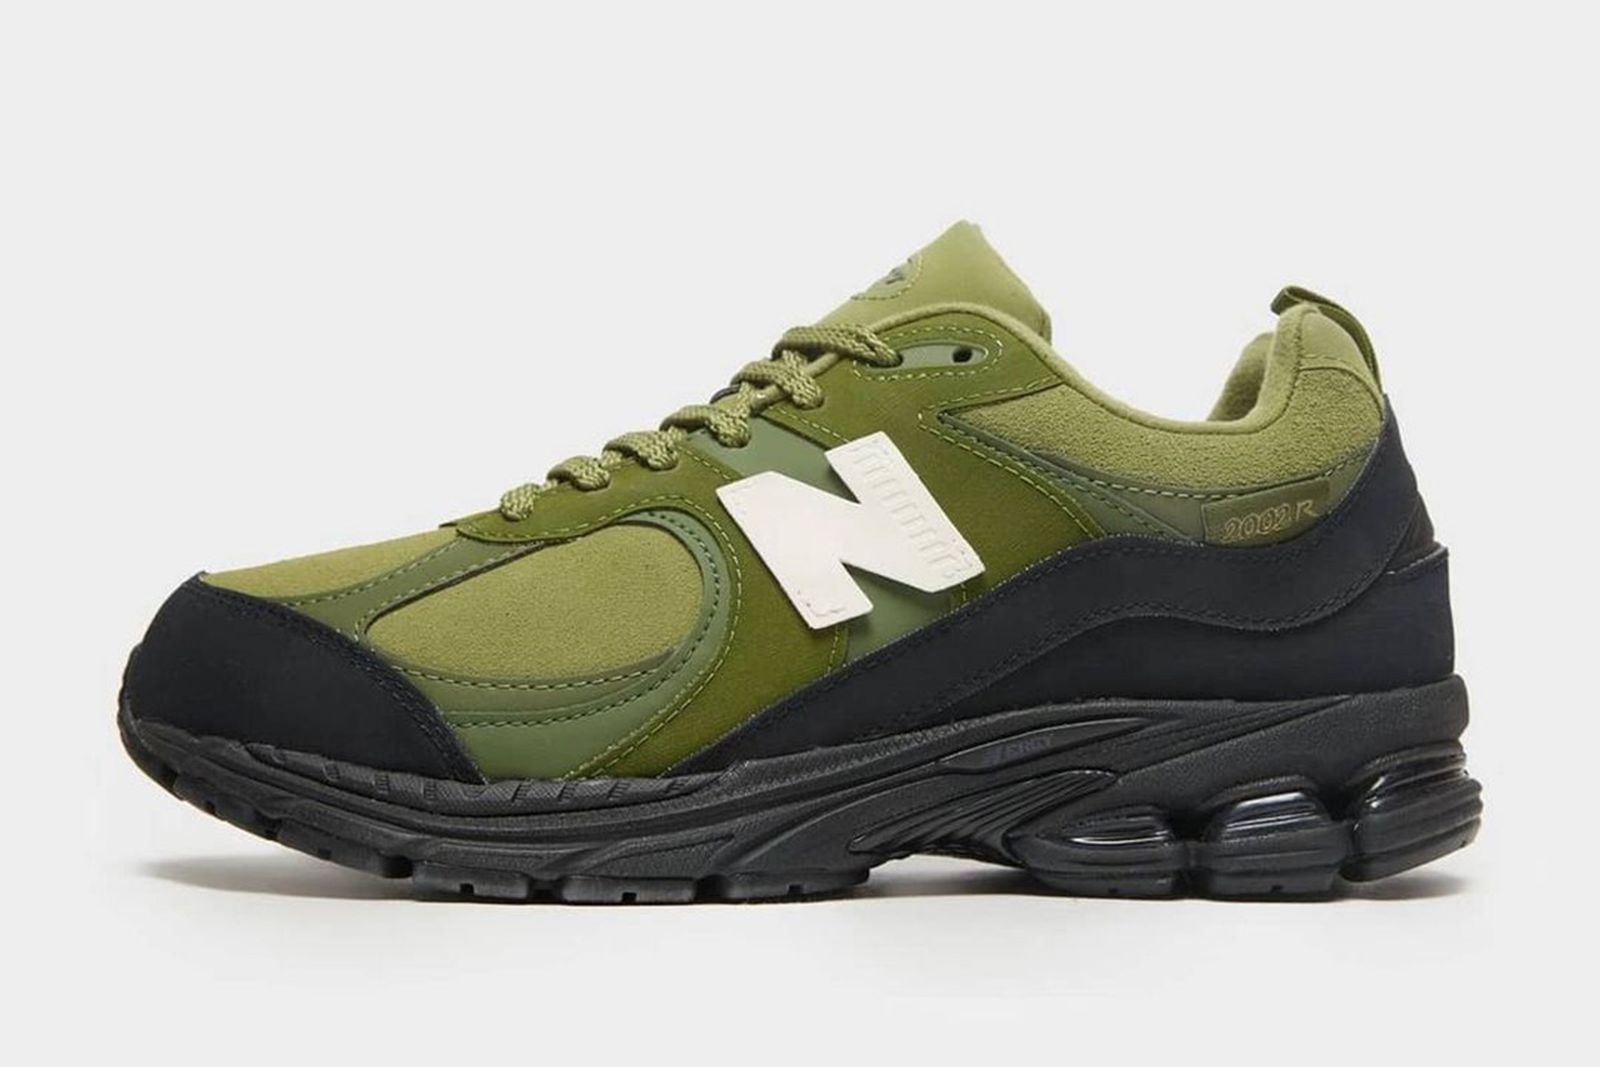 the-basement-new-balance-2002r-release-date-info-price-05